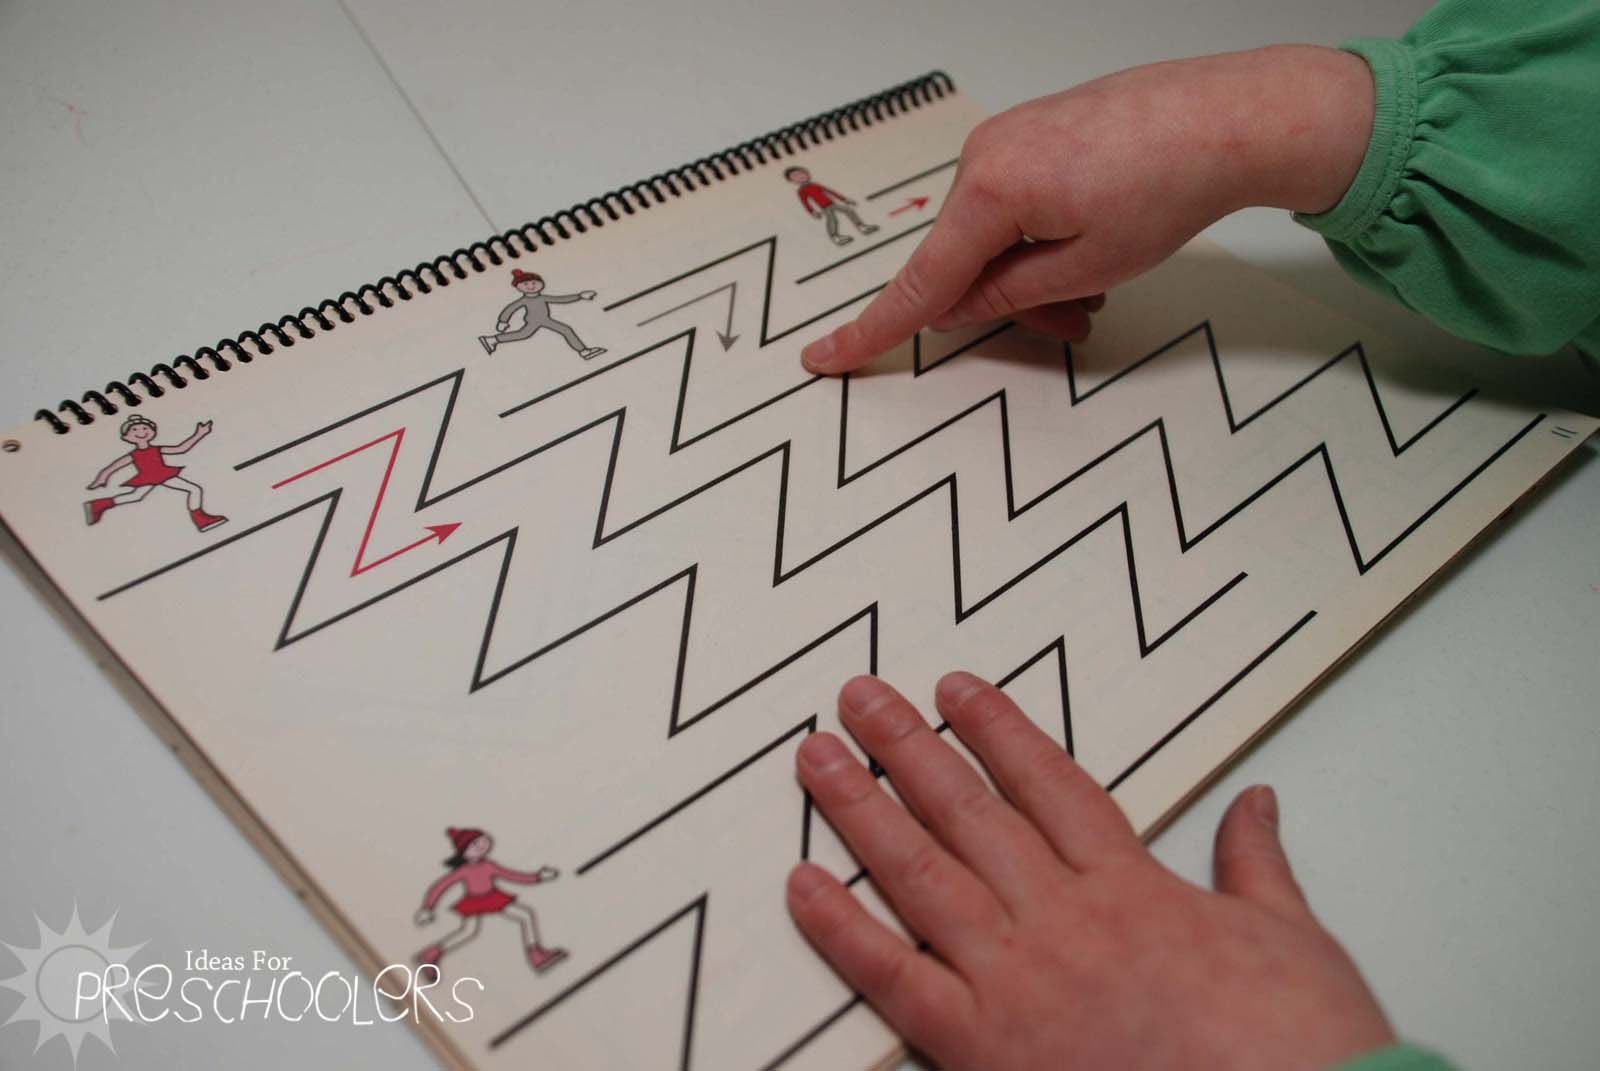 Ideas For Preschoolers: throughout Tracing Letters With Fingers